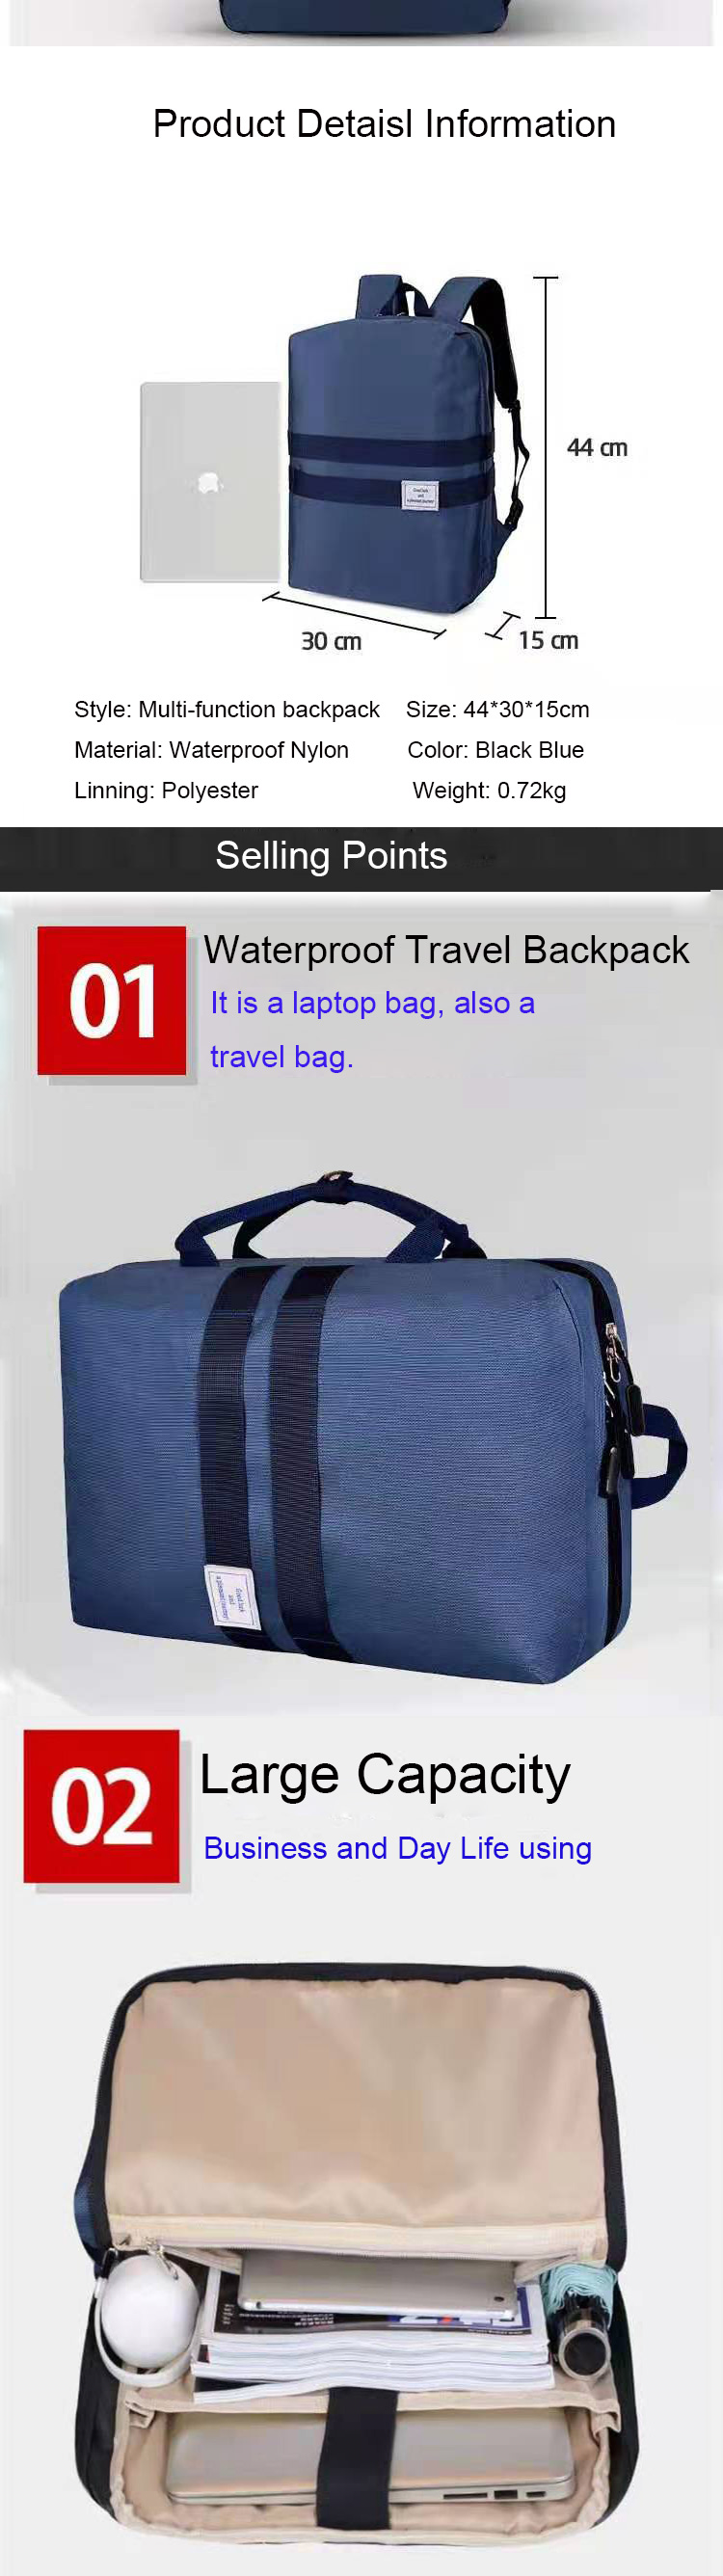 Osgoodway Wholesale Multi-Function Business Laptop Travel Smart Backpack Bags for Men